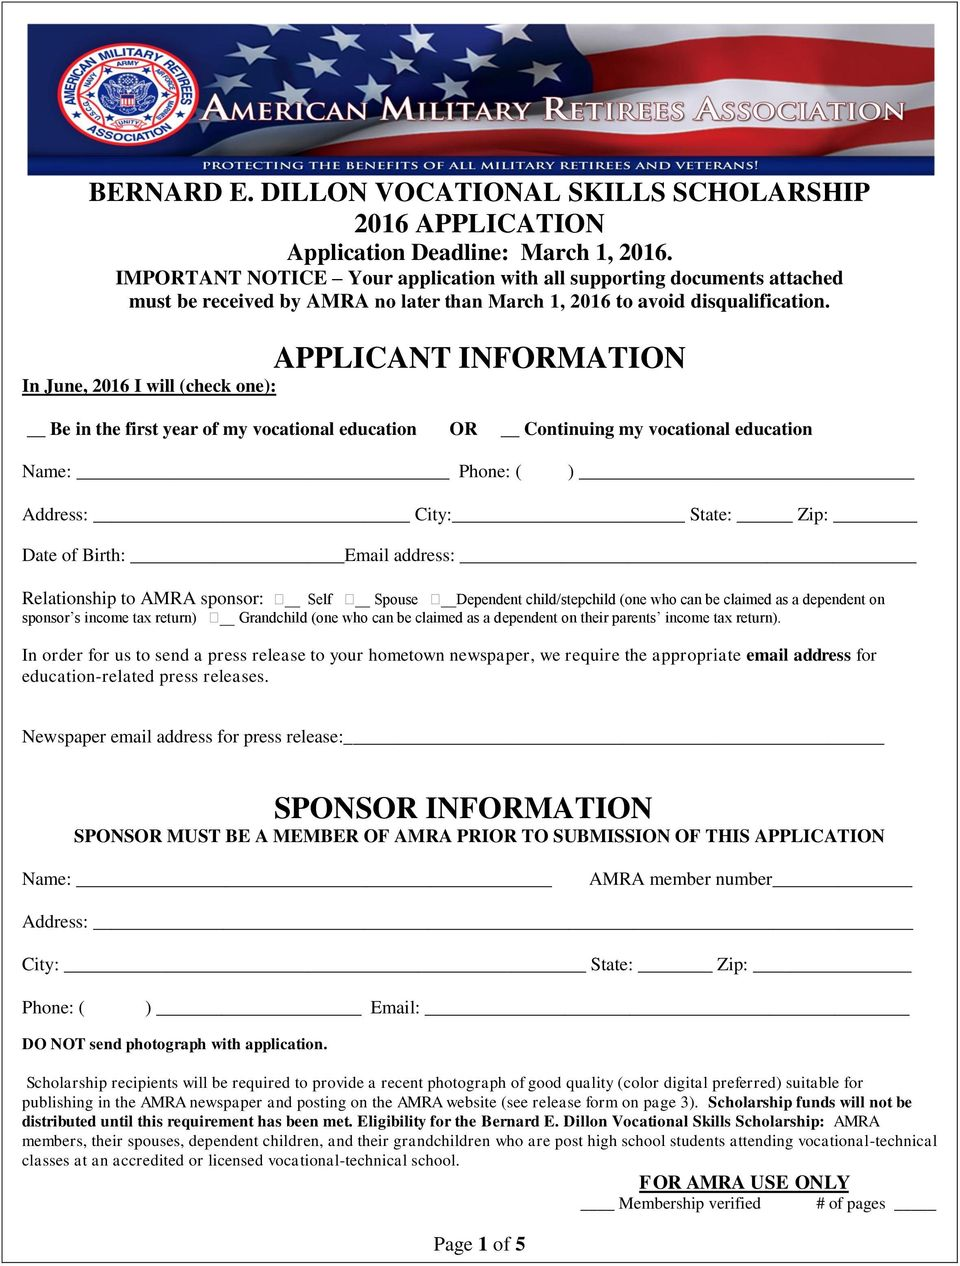 APPLICANT INFORMATION In June, 2016 I will (check one): Be in the first year of my vocational education OR Continuing my vocational education Name: Phone: ( ) Address: City: State: Zip: Date of